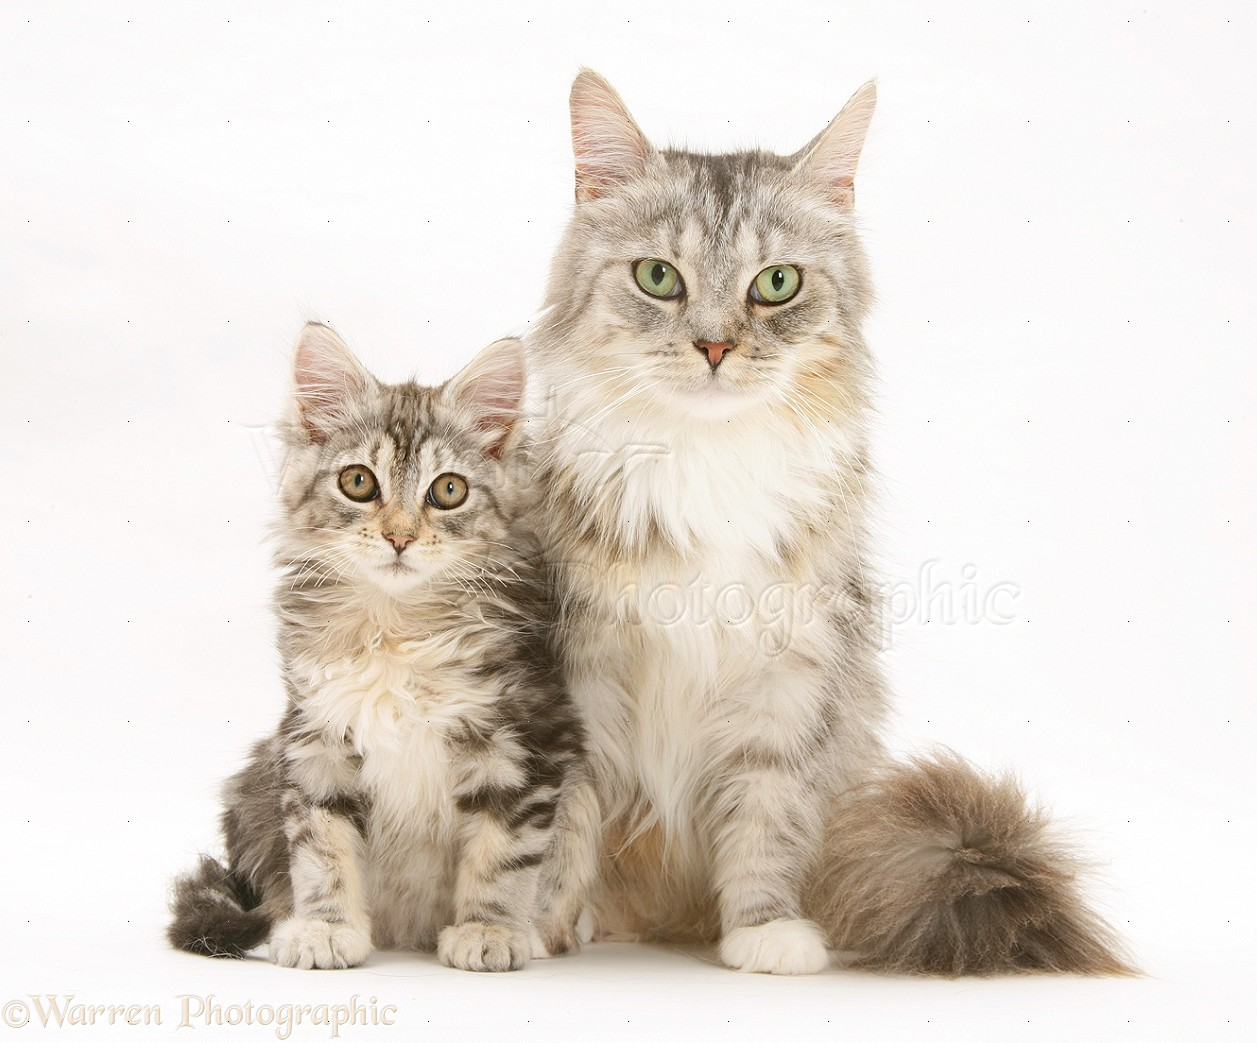 Maine Coon mother cat and kitten photo WP23837 Tabby Maine Coon Kitten